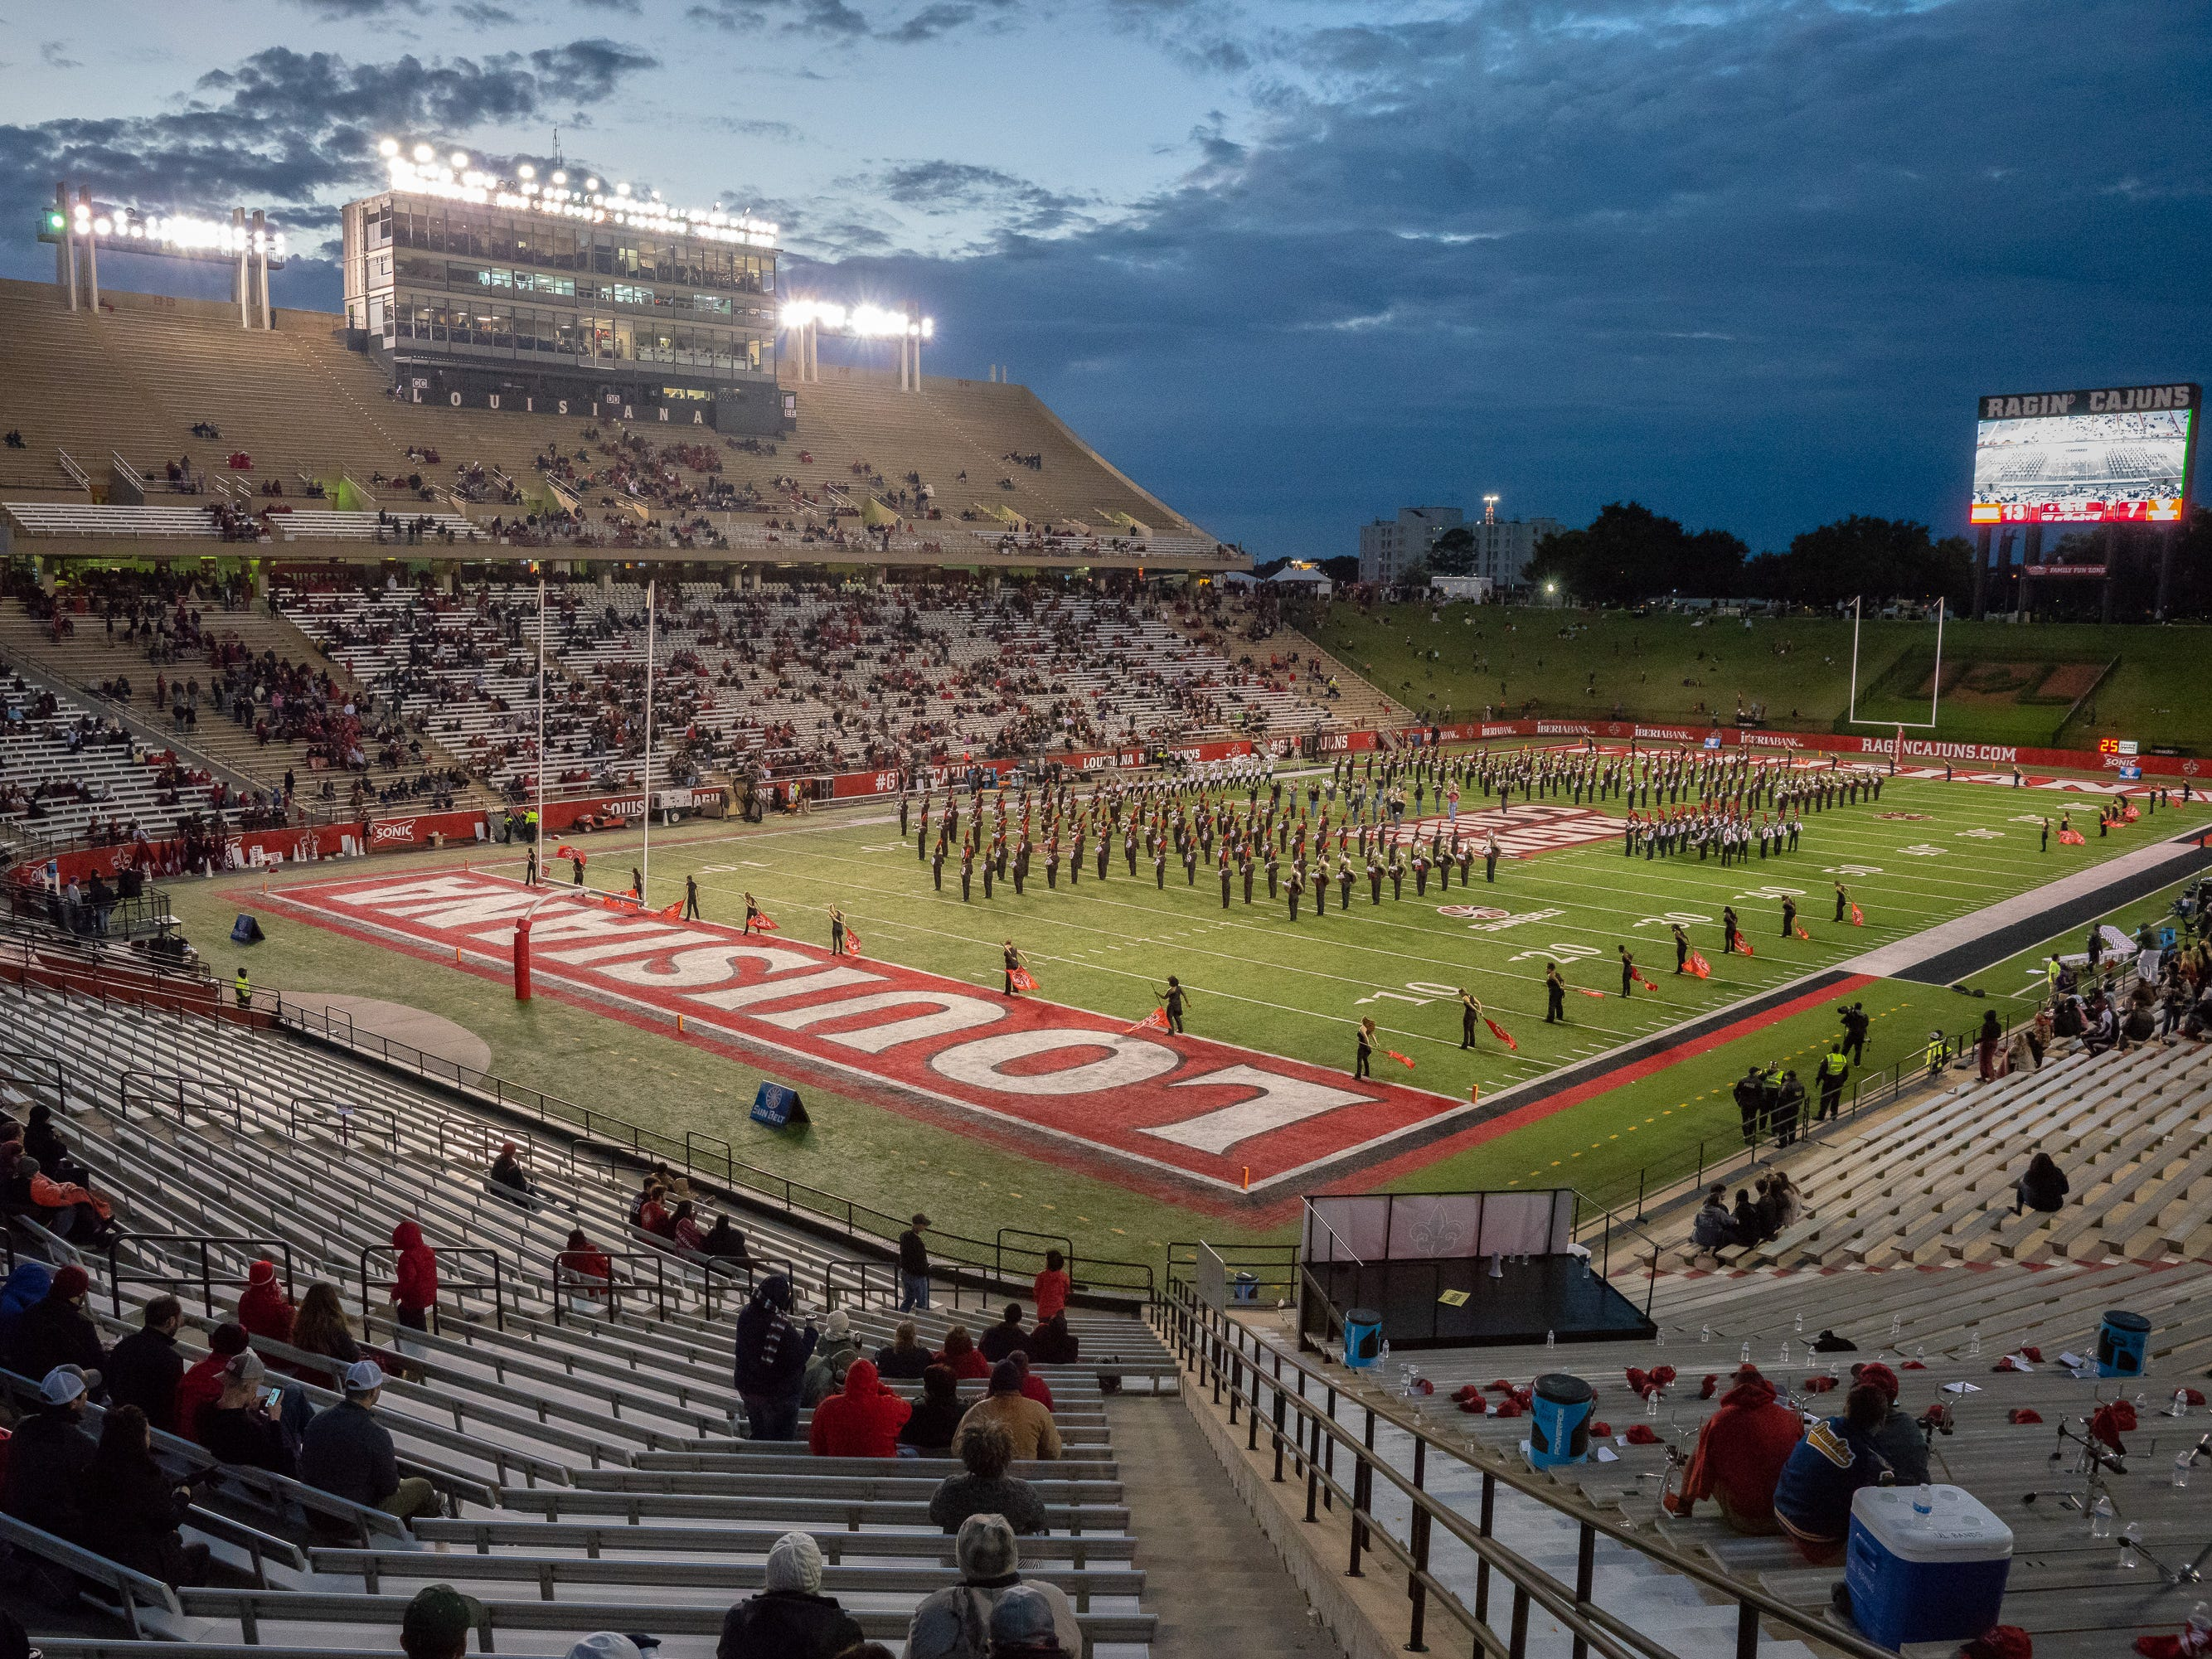 The Pride of Acadiana marching band performs at half-time as the Ragin' Cajuns play against the Georgia State Panthers at Cajun Field on Saturday Nov. 10, 2018.